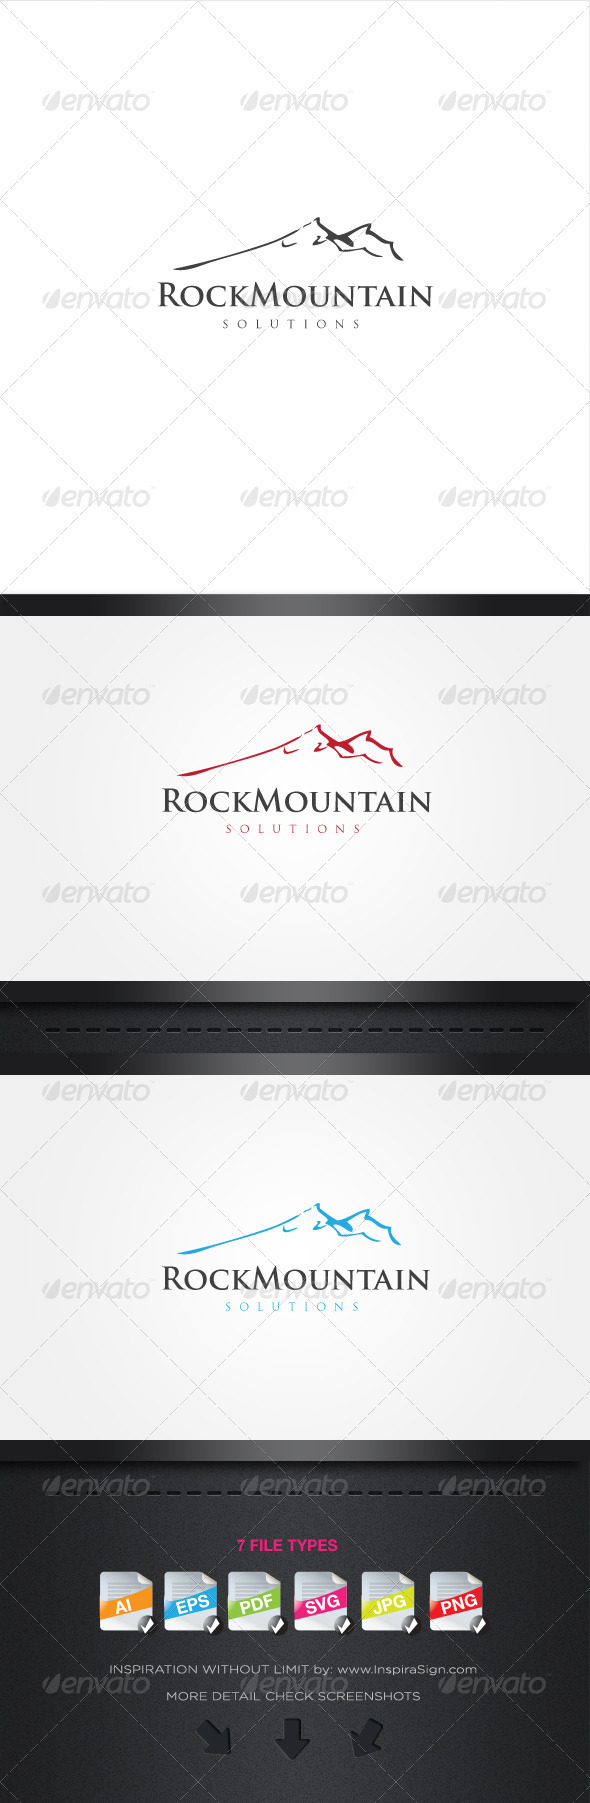 Rock Mountain - Simple Logo For Your Company